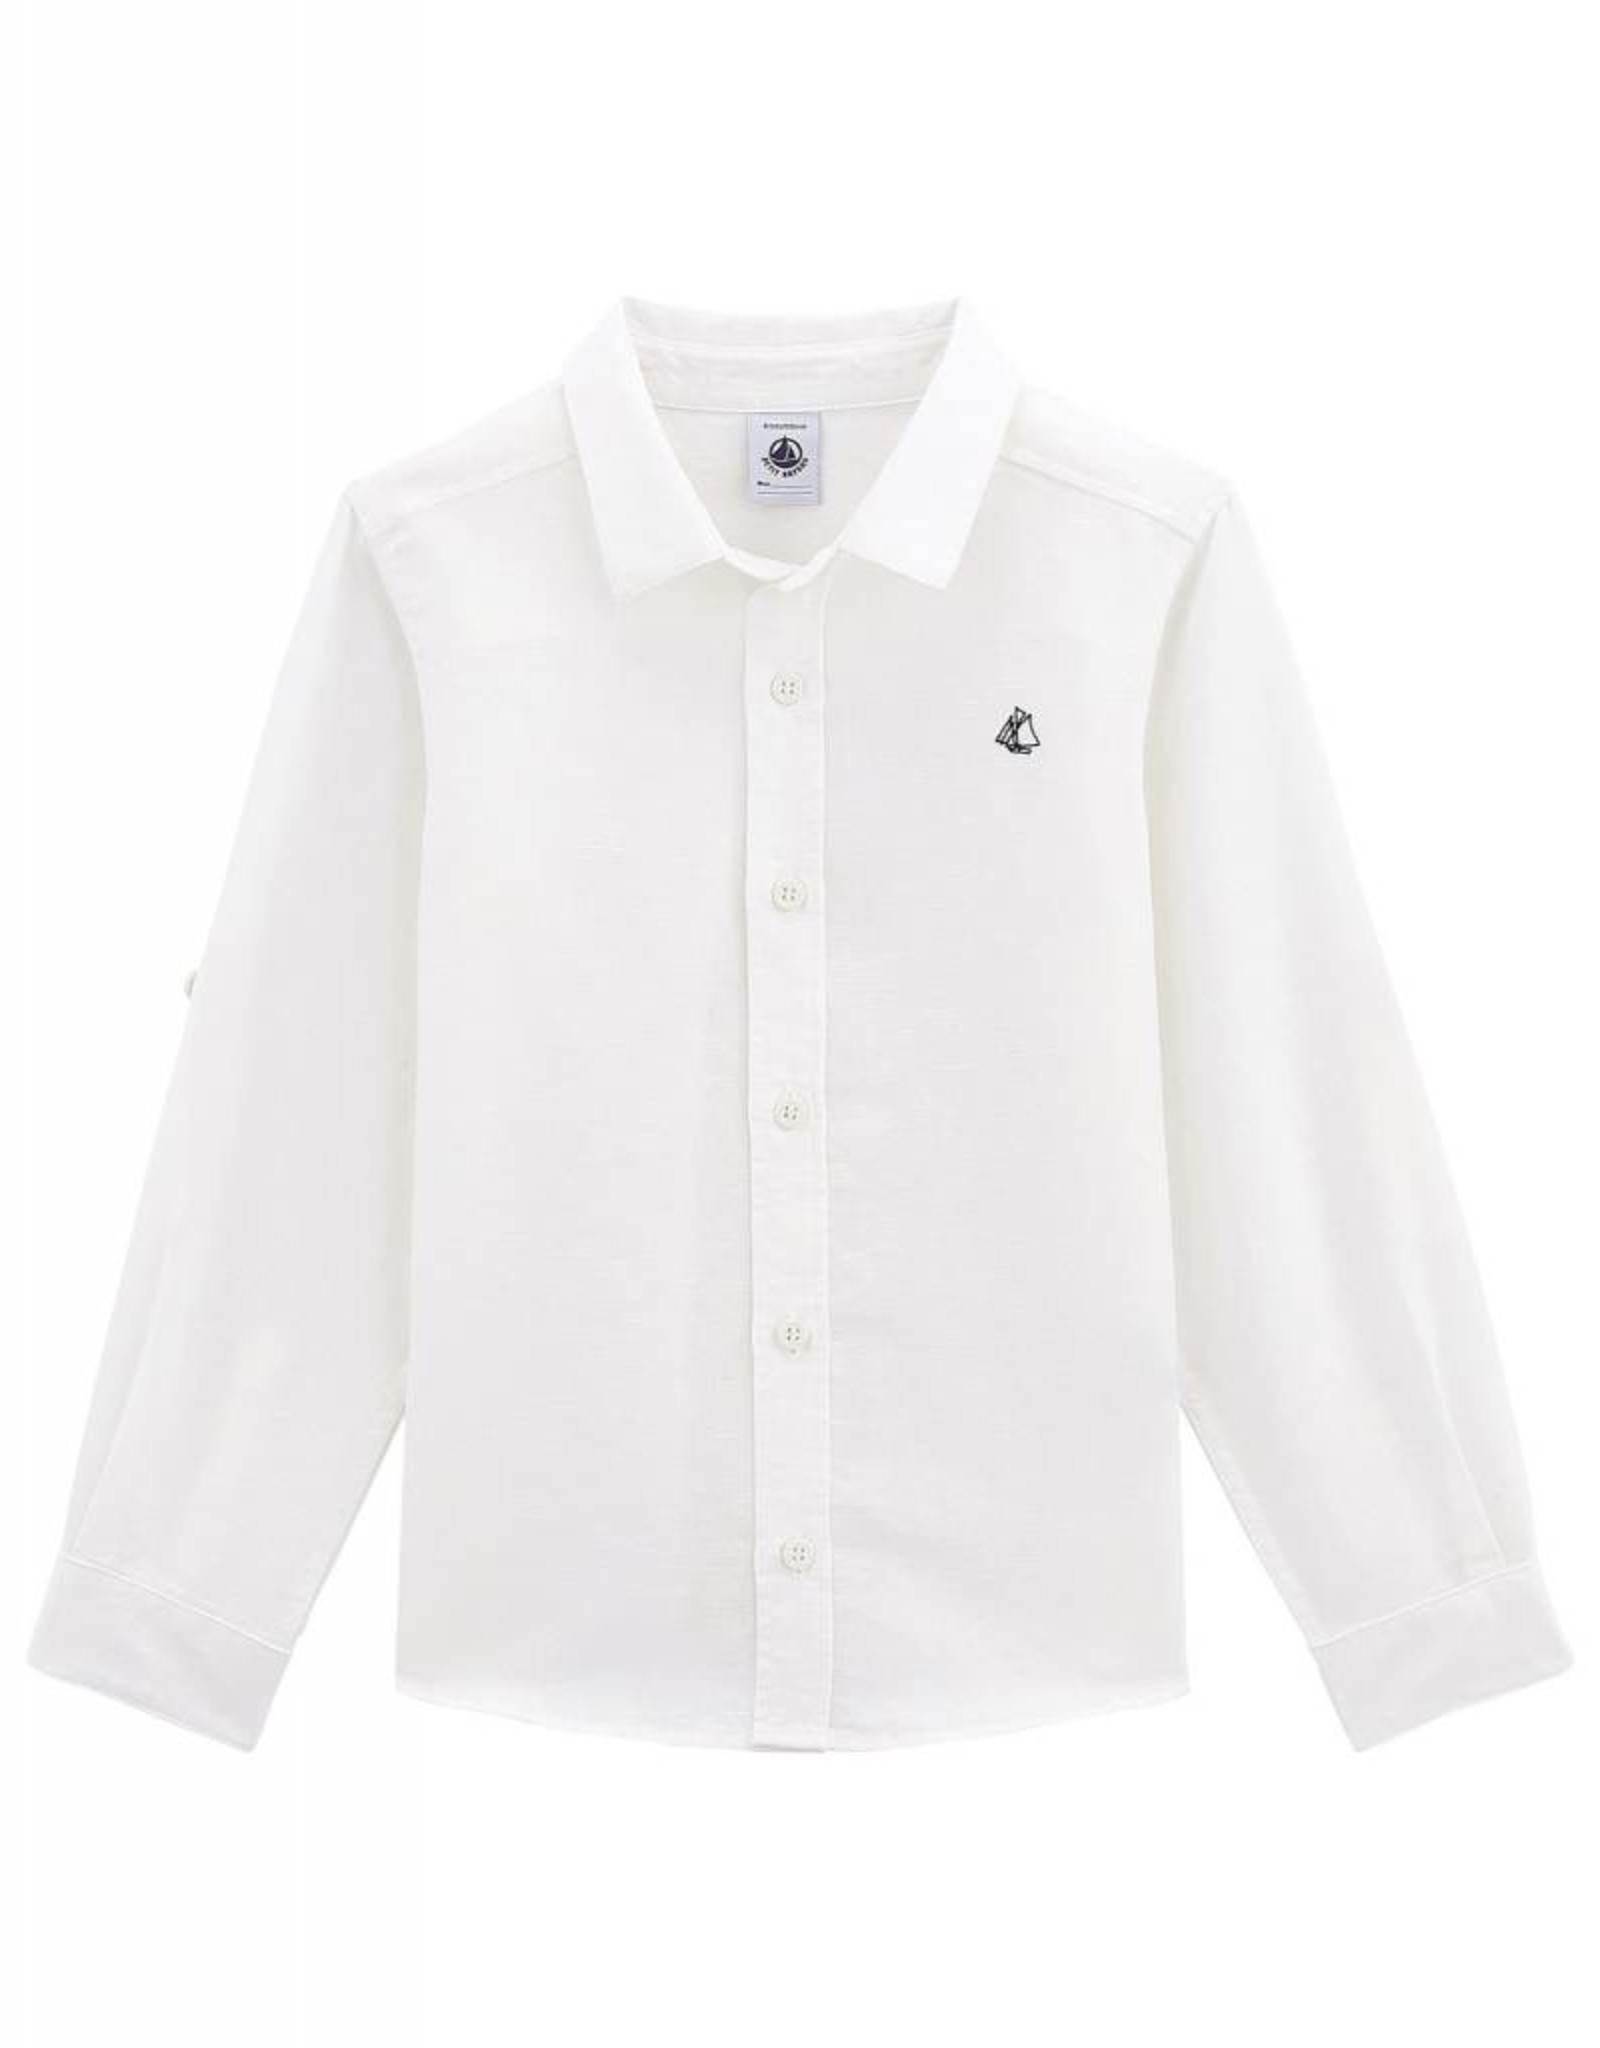 Boys Martino shirt in linen